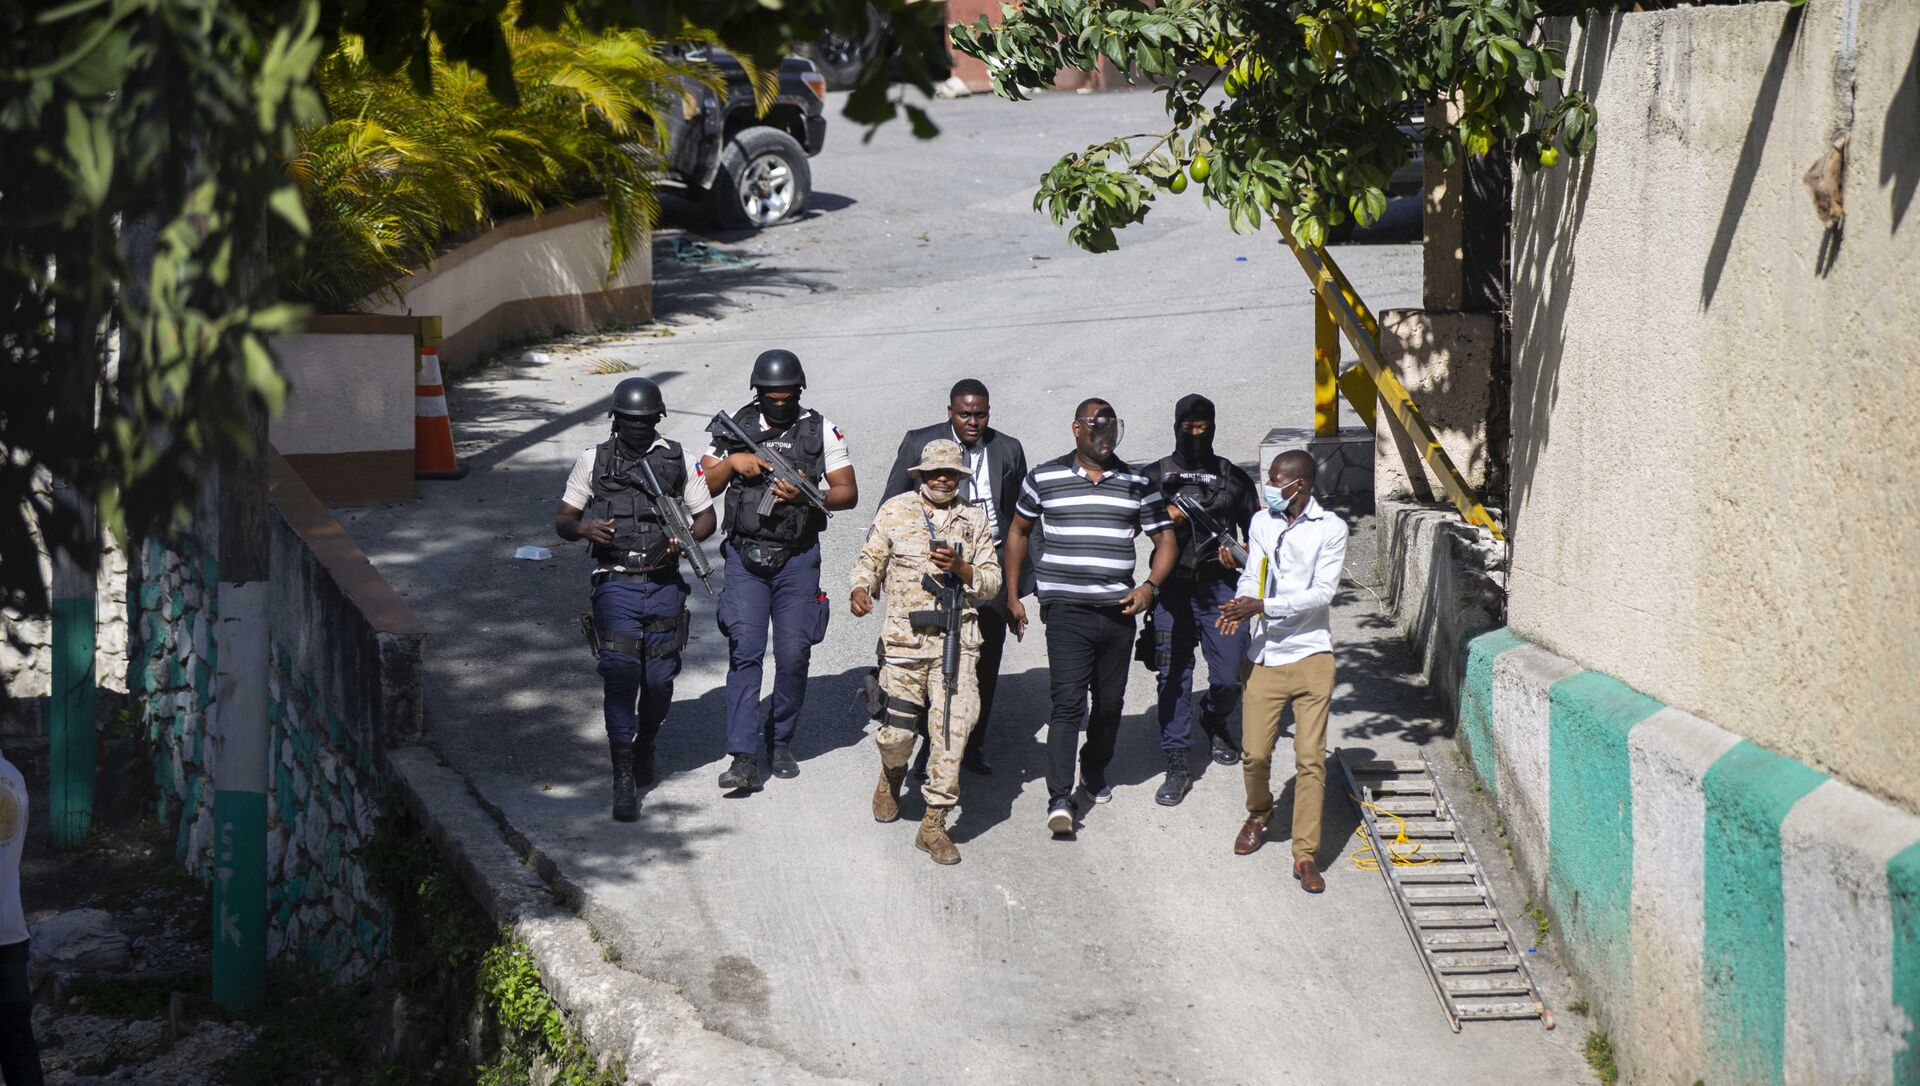 Security forces investigate the perimeters of the residence of Haitian President Jovenel Moise, in Port-au-Prince, Haiti, Wednesday, July 7, 2021. - Sputnik 日本, 1920, 08.07.2021